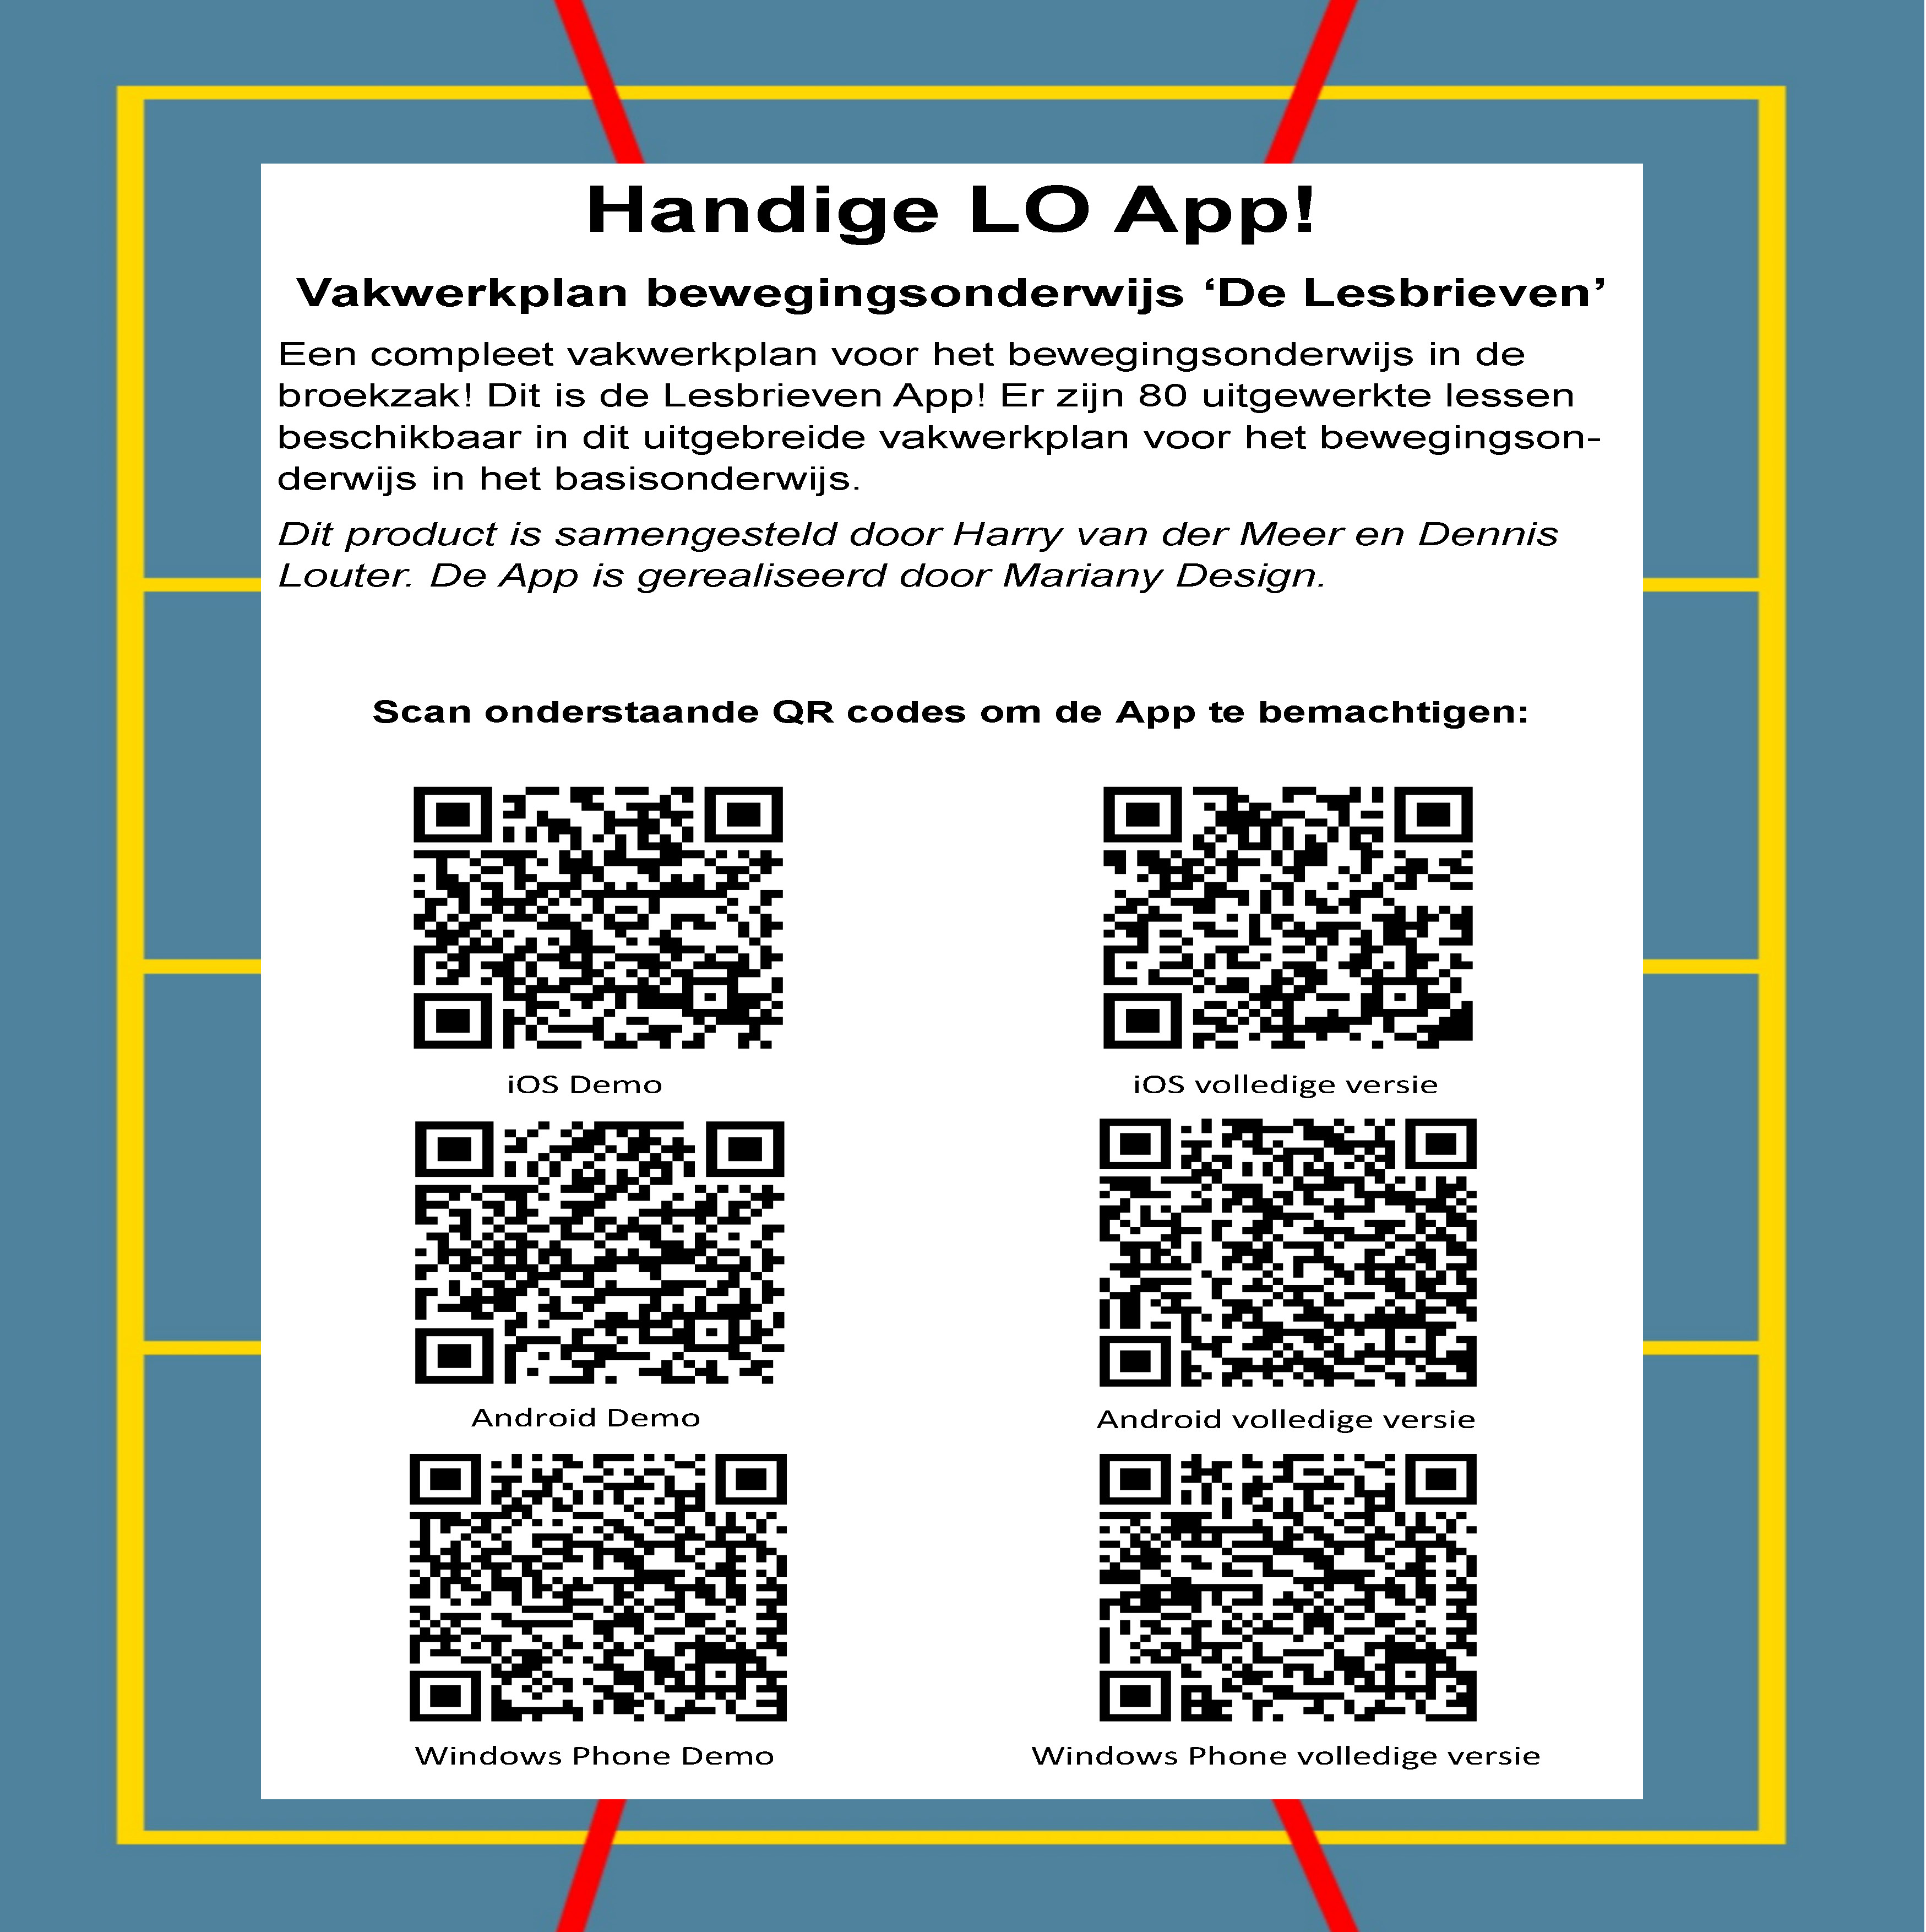 A6flyer-QRcodes-delesbrieven-gigg-gw